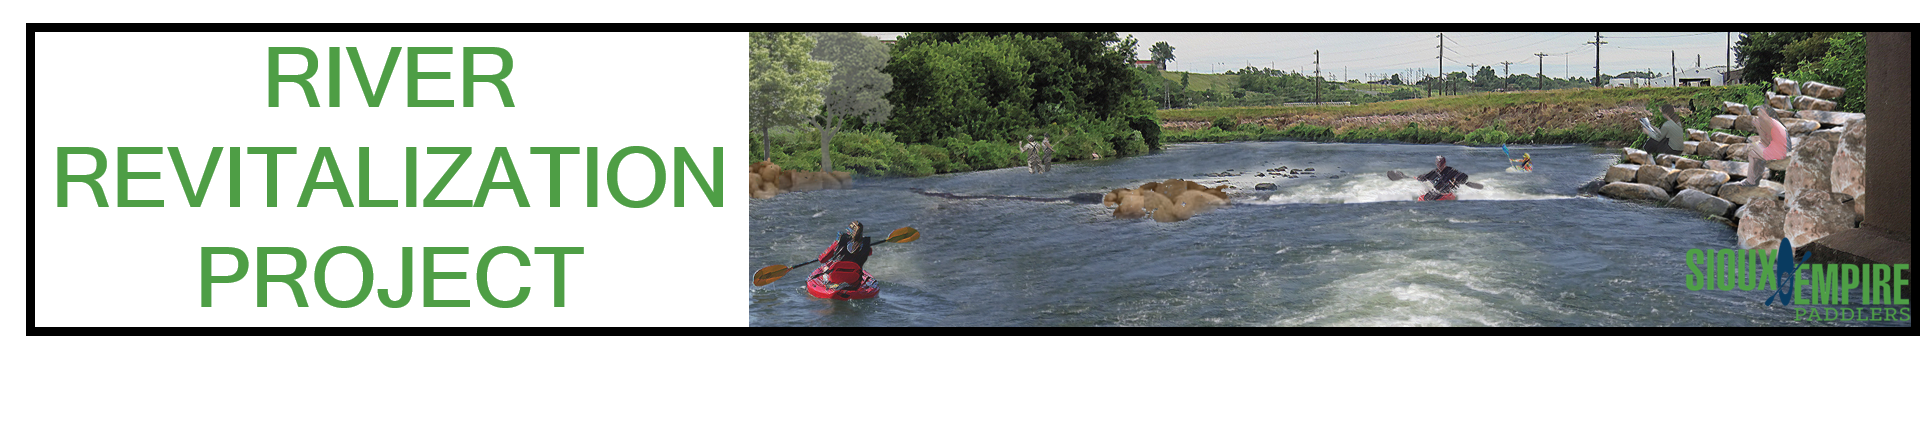 River Flow Rates And Maps Sioux Empire Paddlers